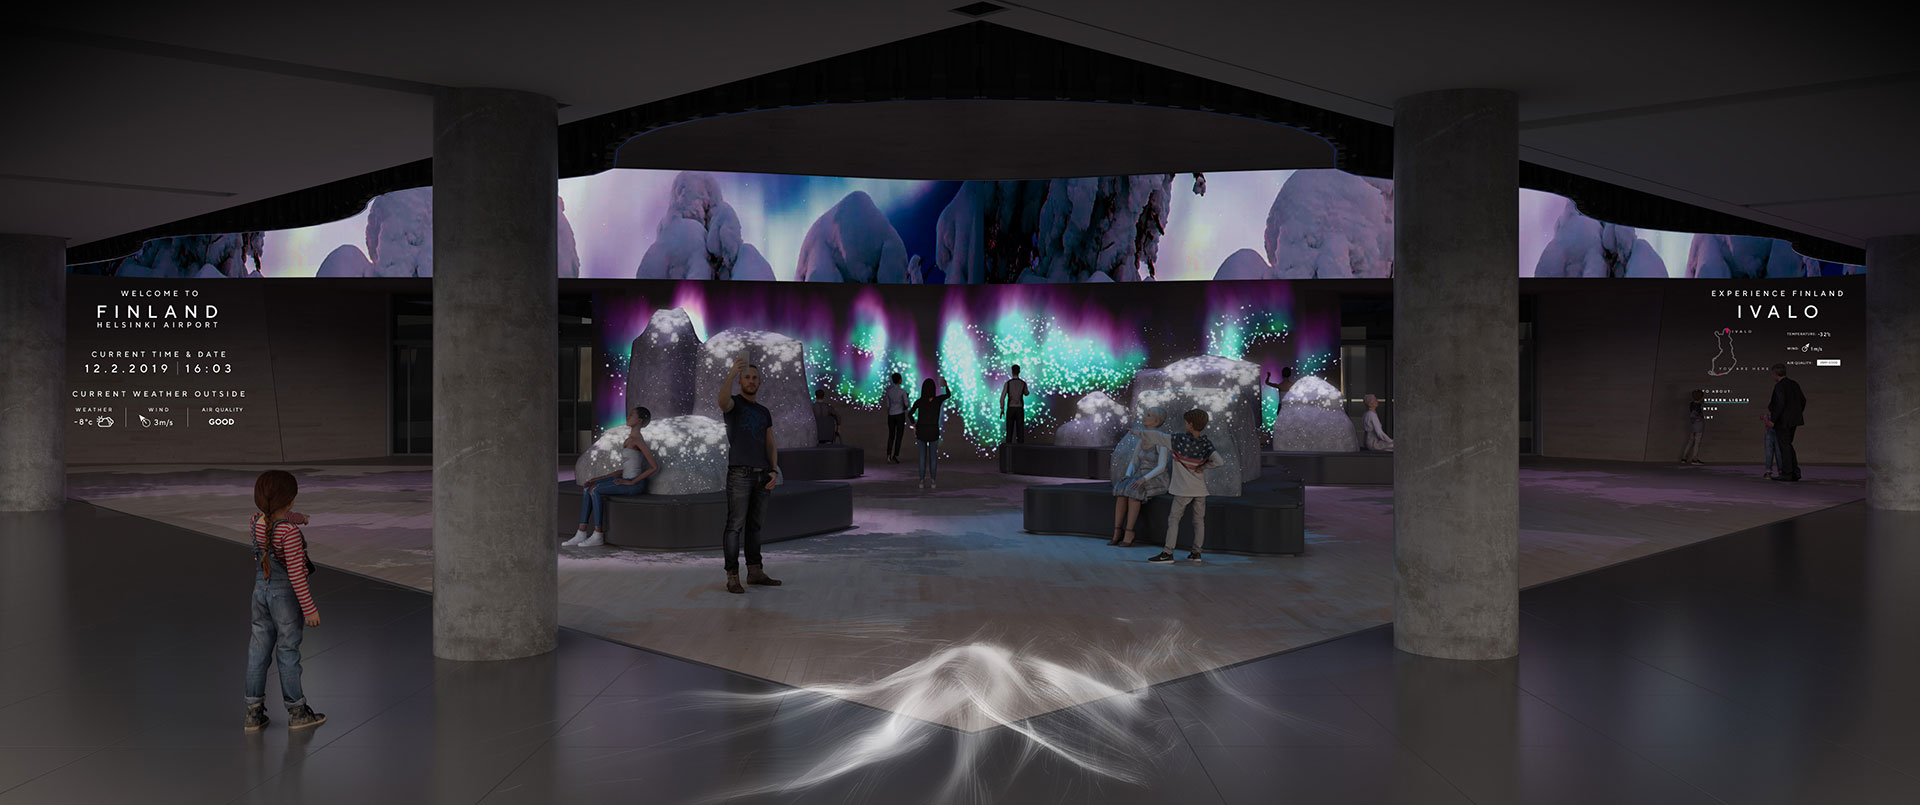 Interactive and immersive nature experience by OiOi, Granlund and Finavia